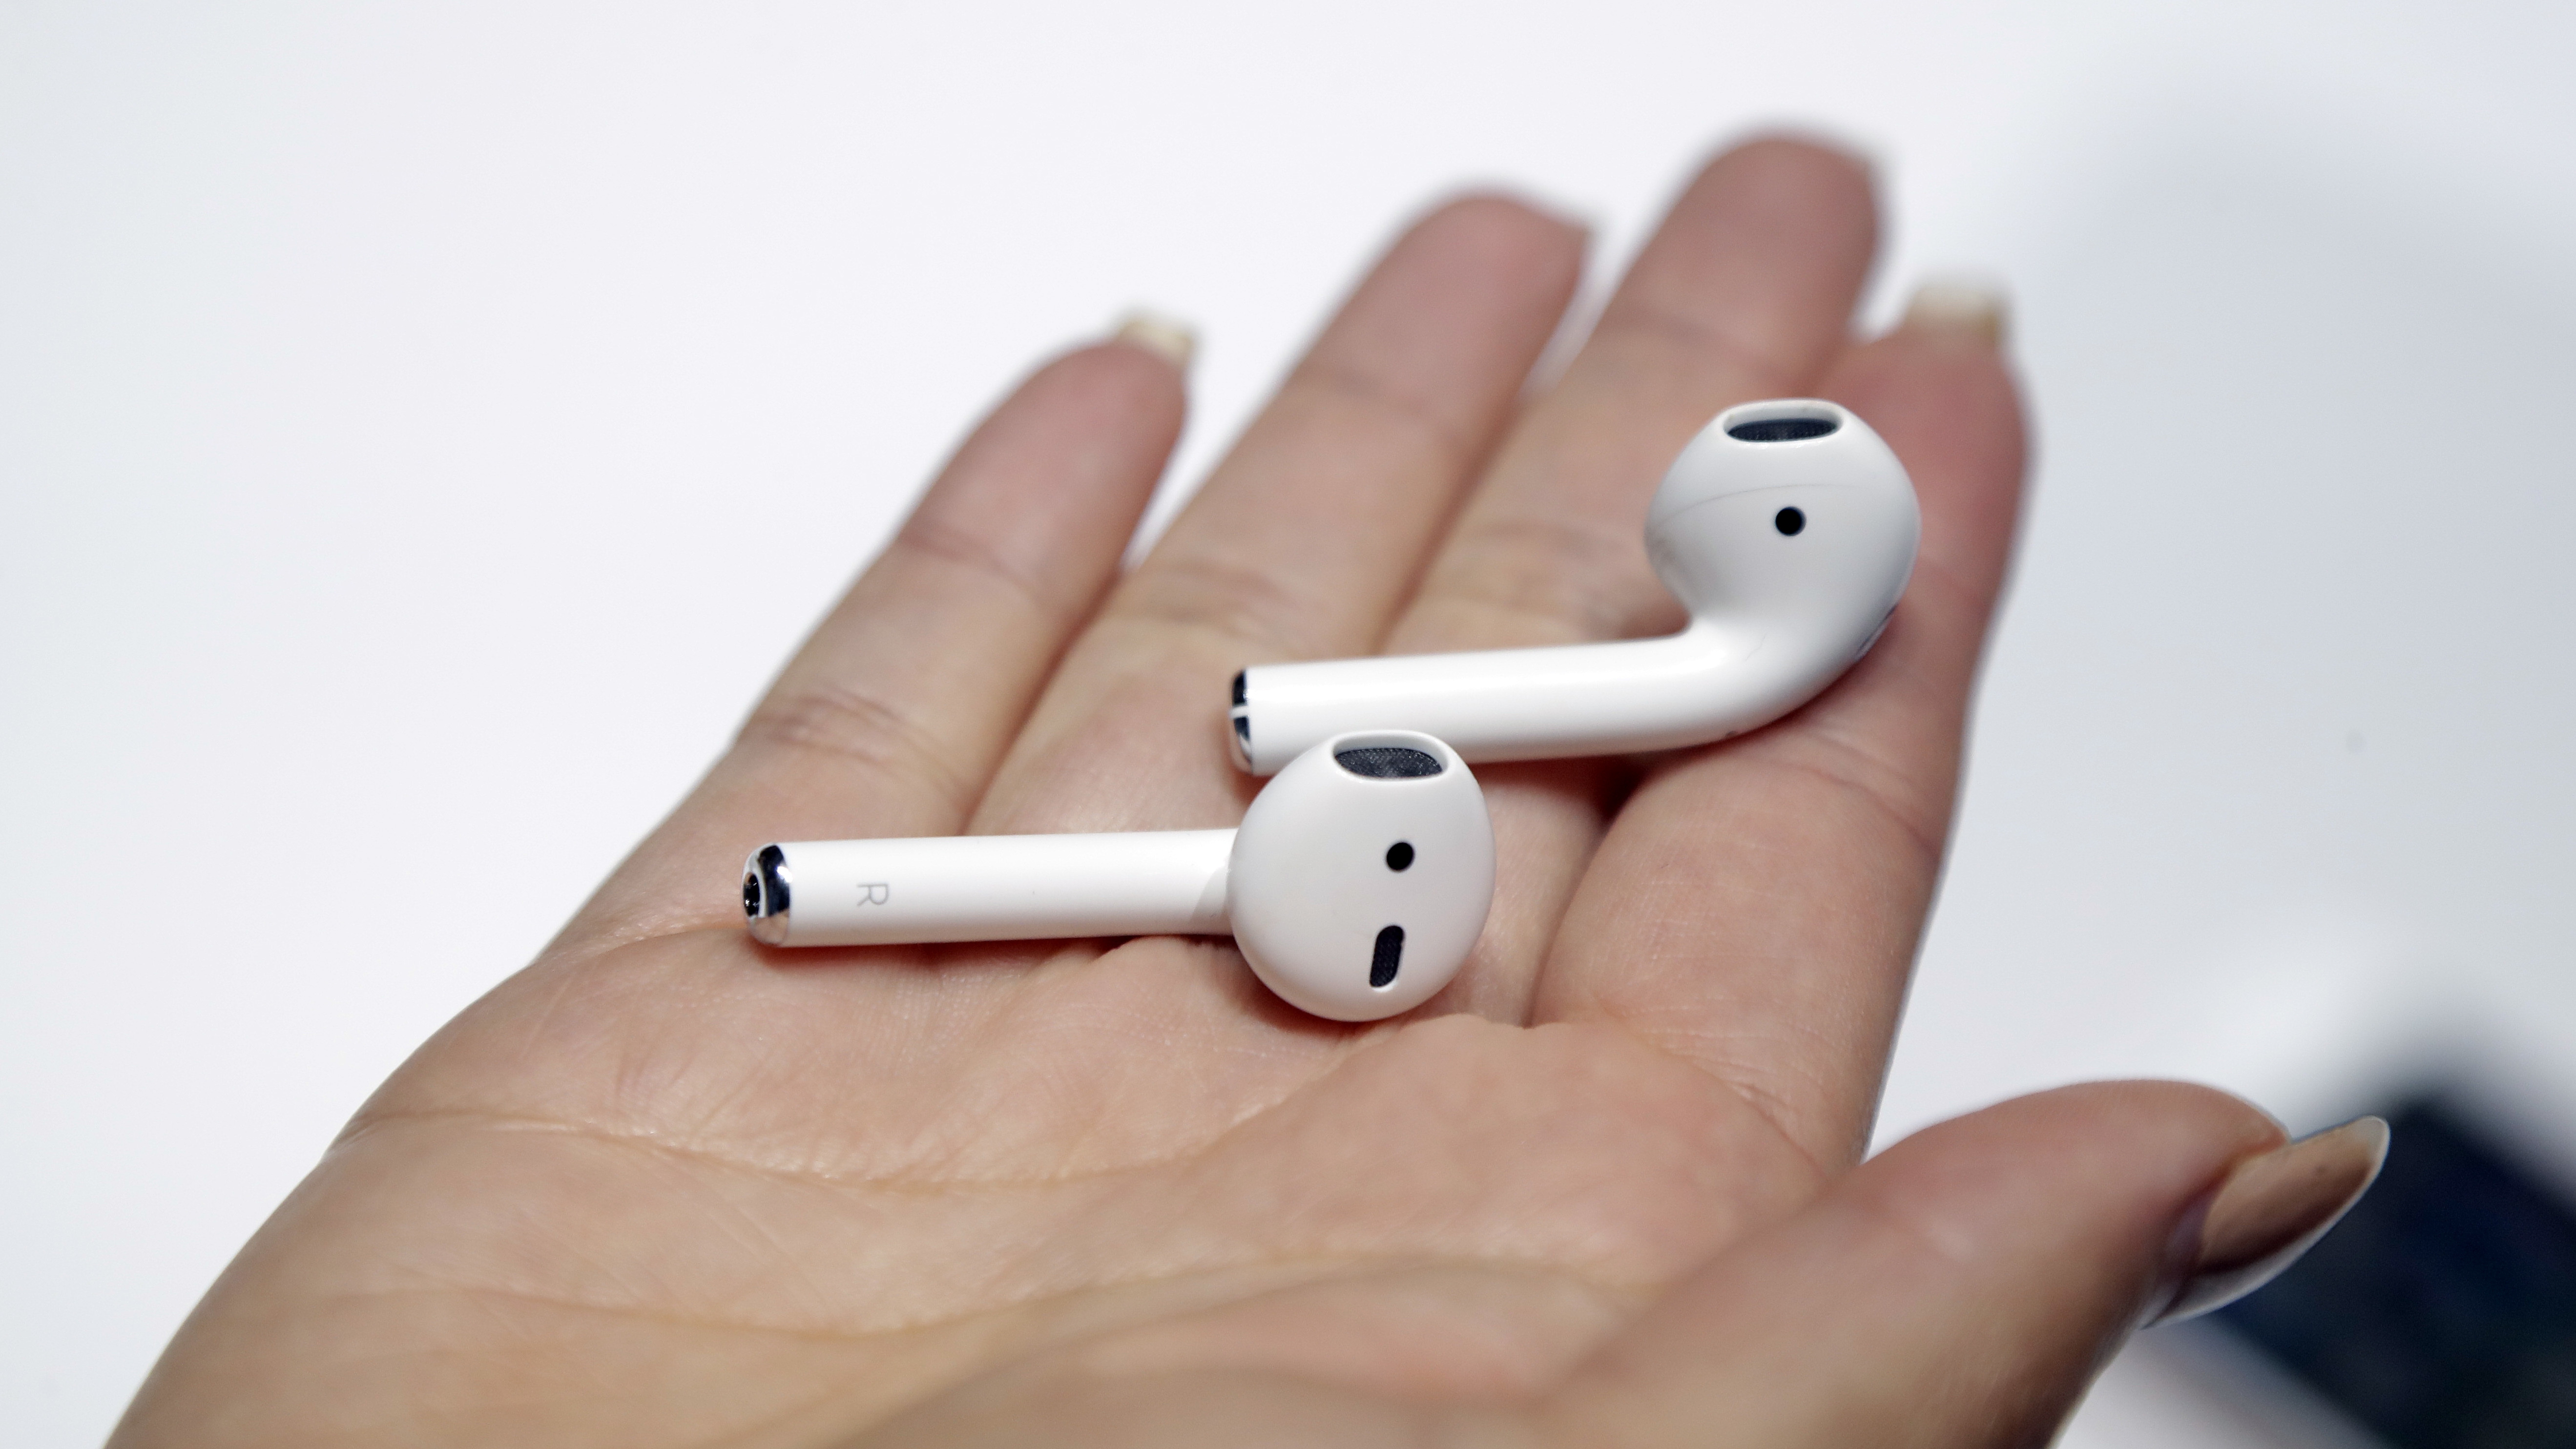 The new Apple AirPods are shown during an event to announce new Apple products on Wednesday, Sept. 7, 2016, in San Francisco. (AP Photo/Marcio Jose Sanchez)